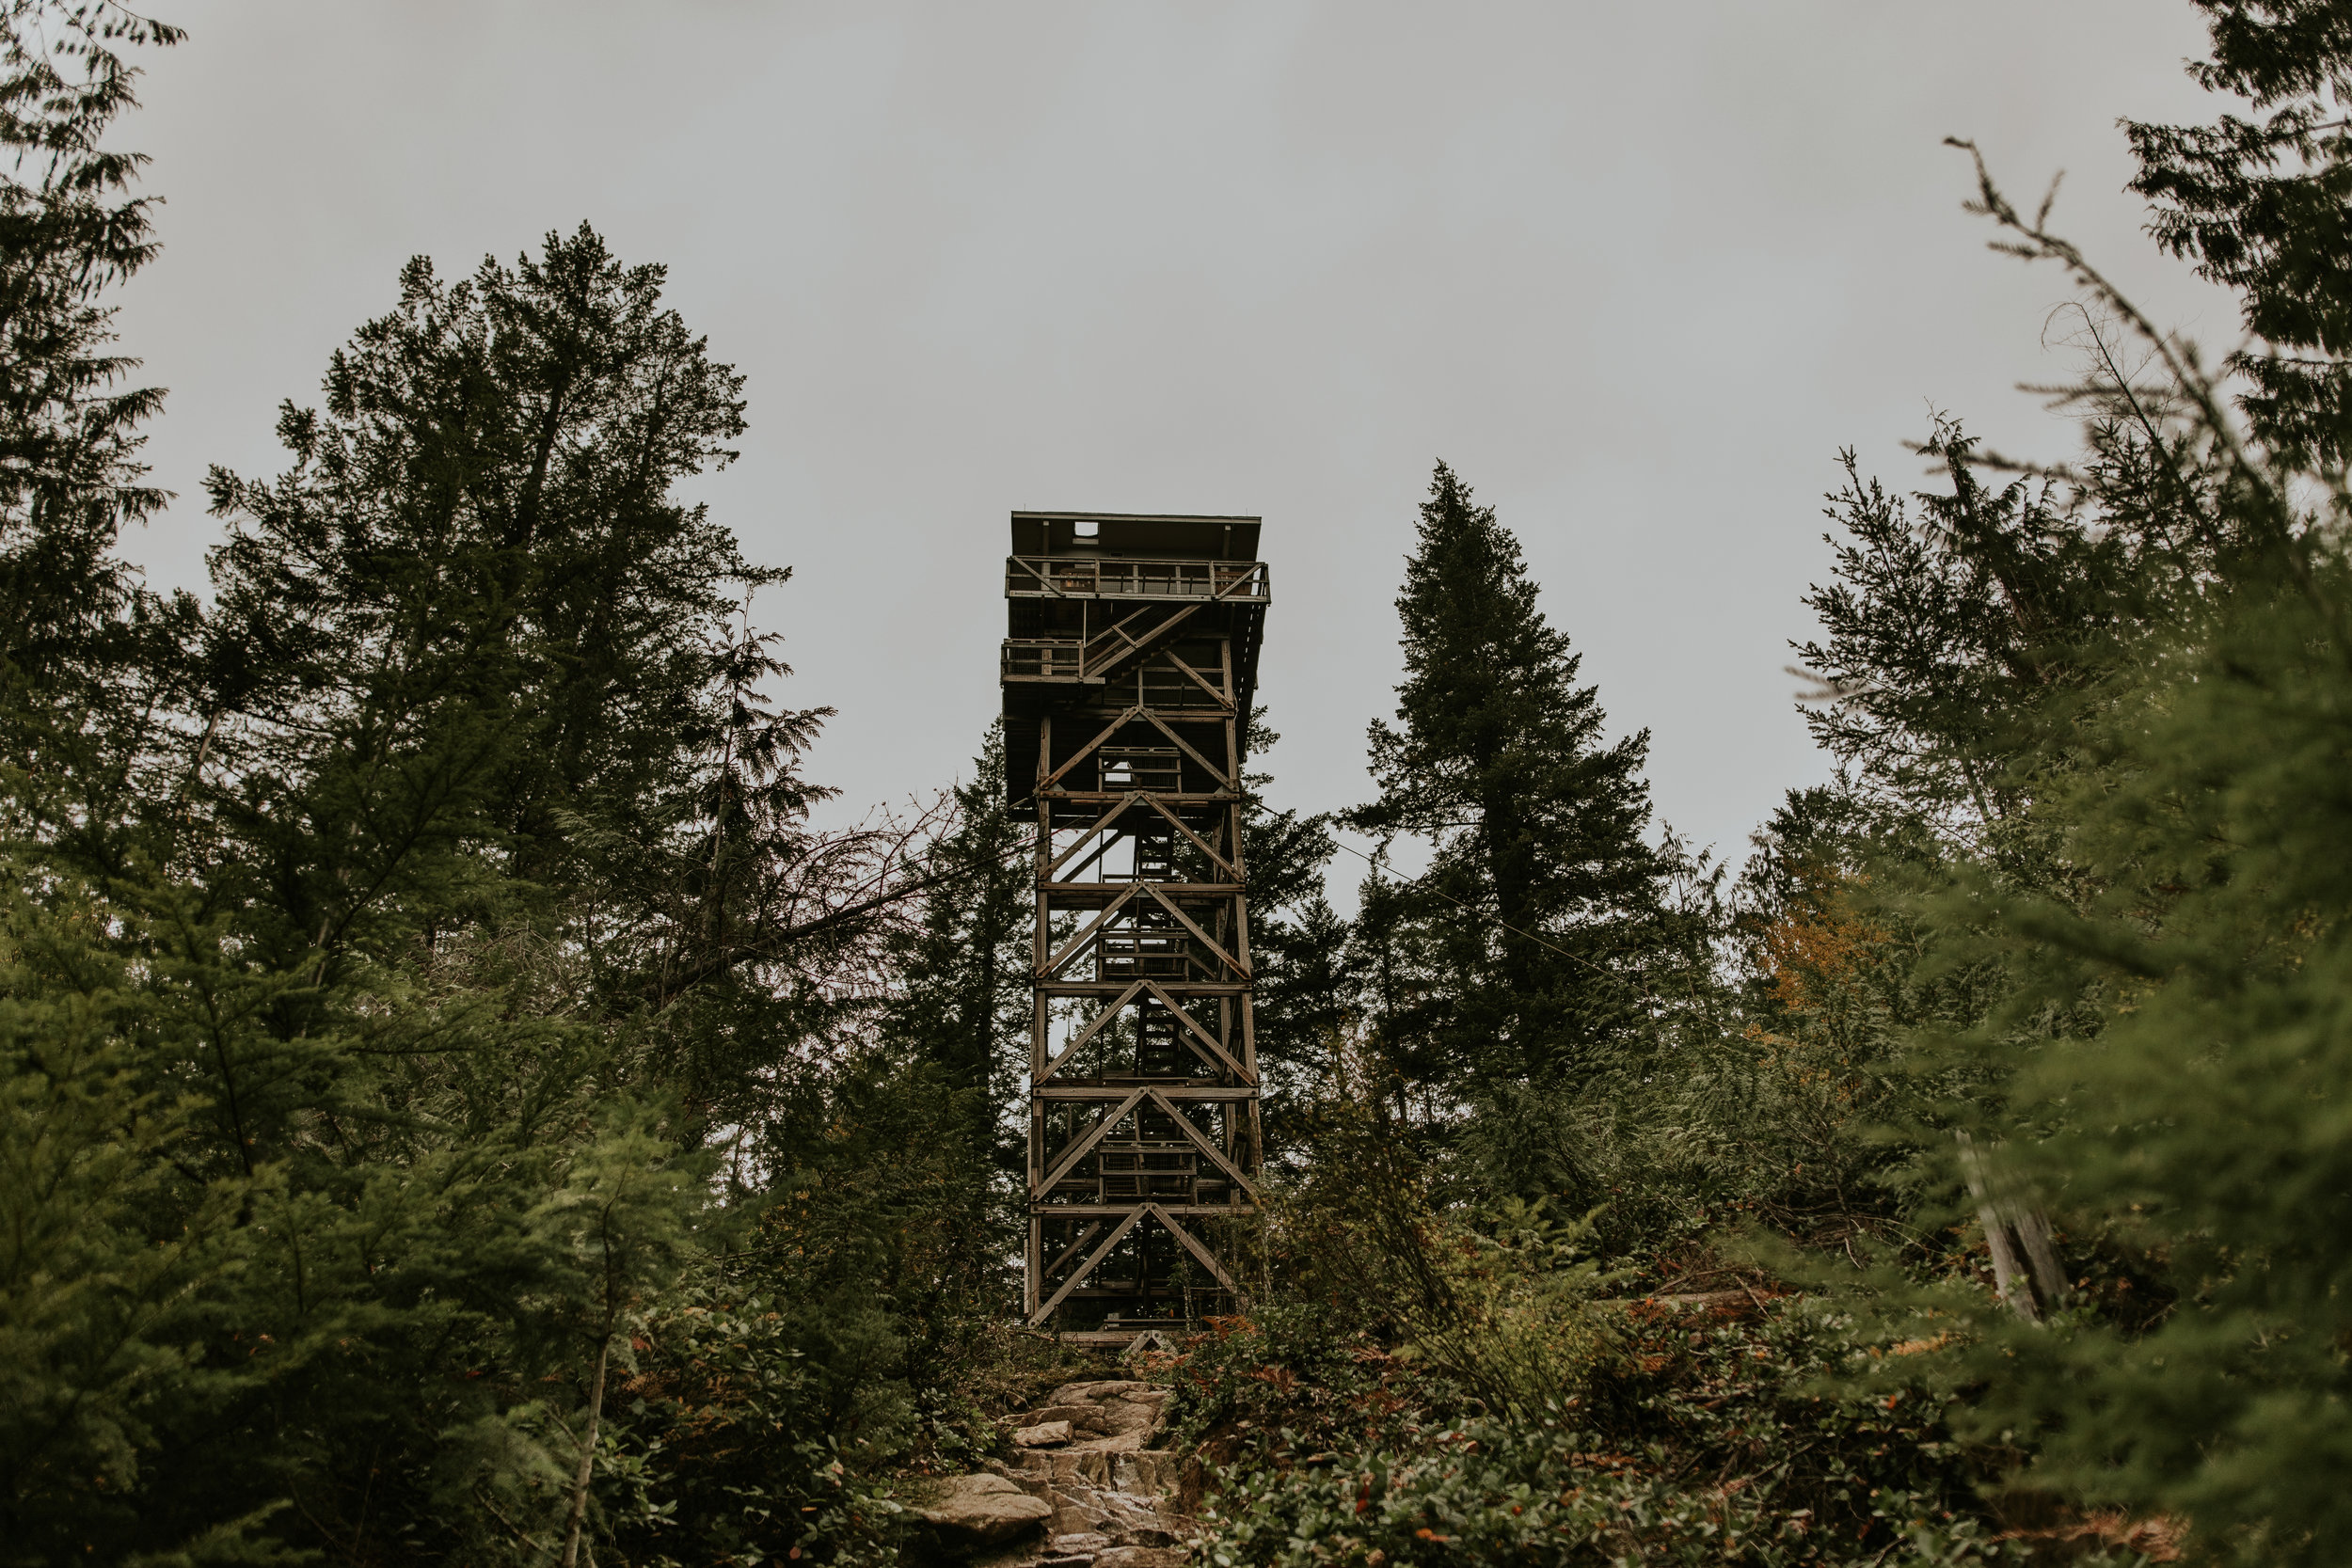 Heybrook Fire Lookout - Mt. Baker - Snoqualmie National Forest